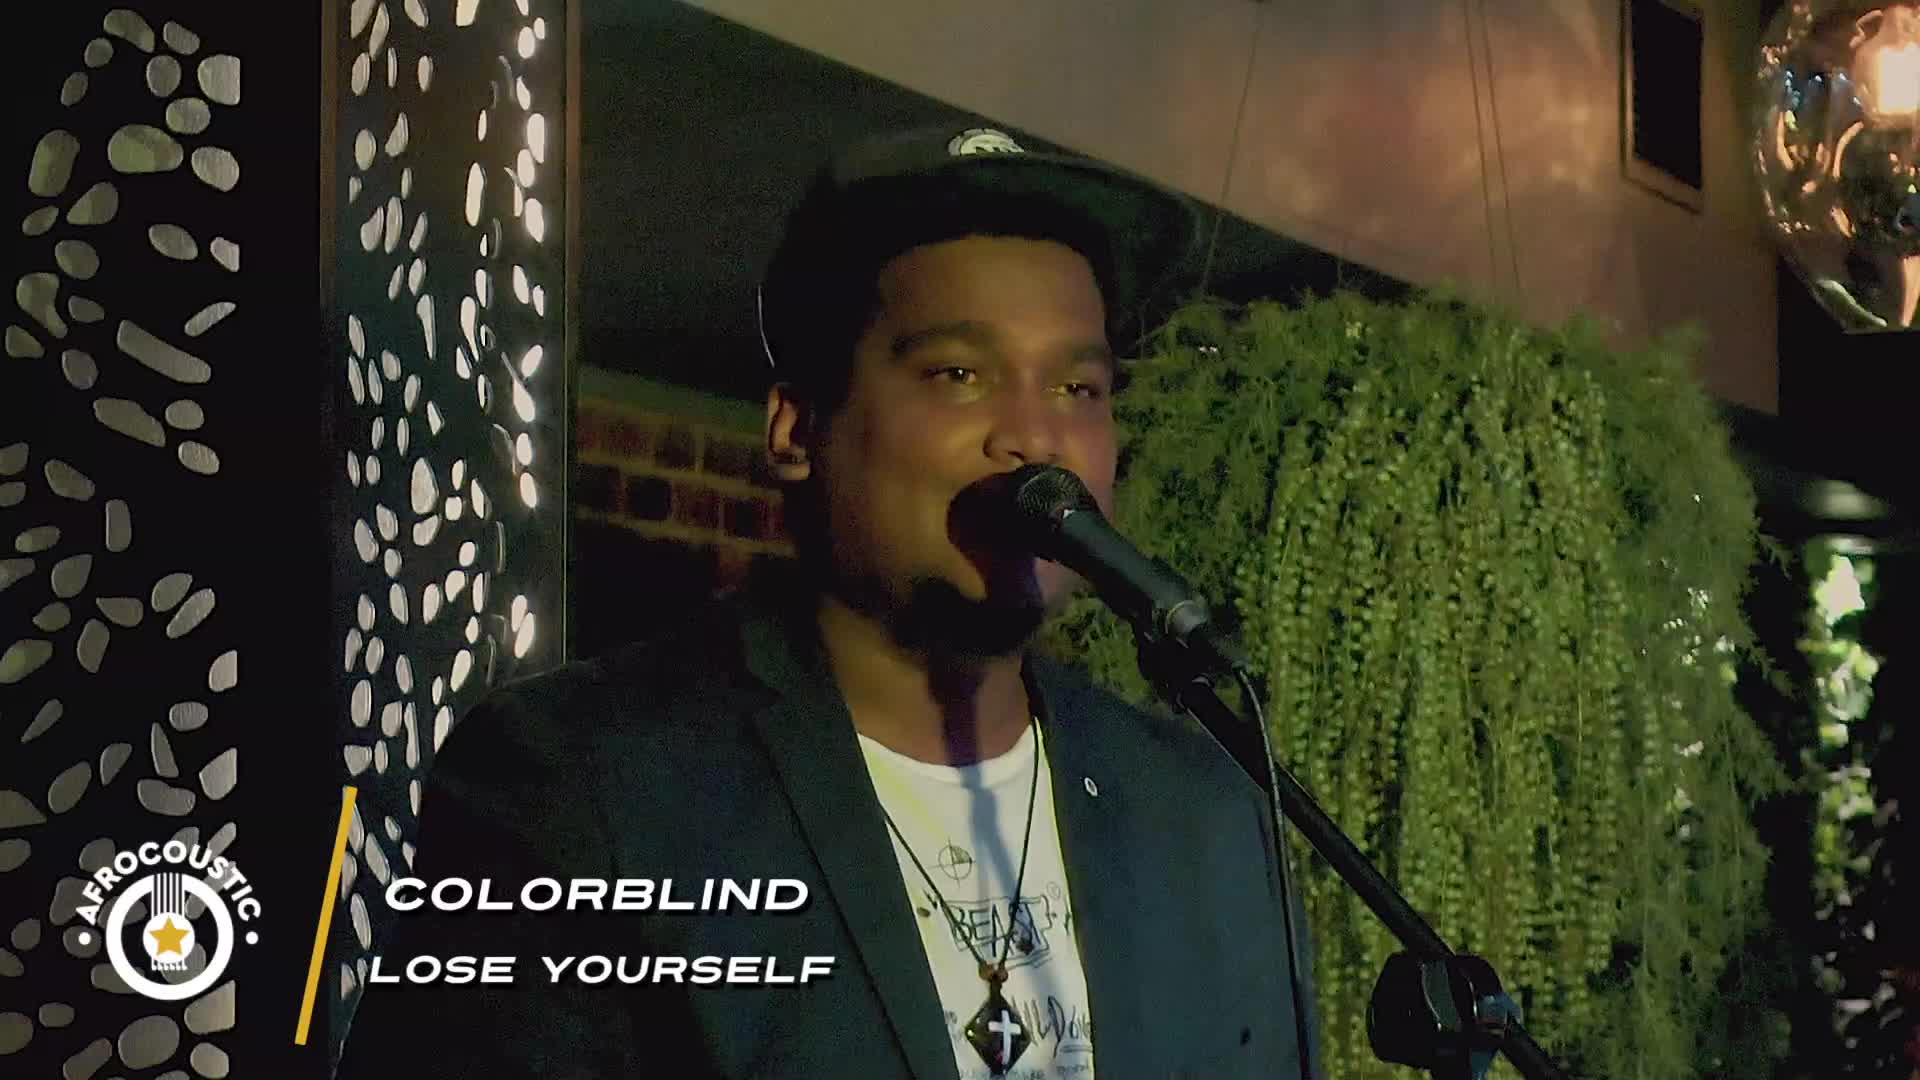 Afrocoustic - Colour Blind - Lose Youself